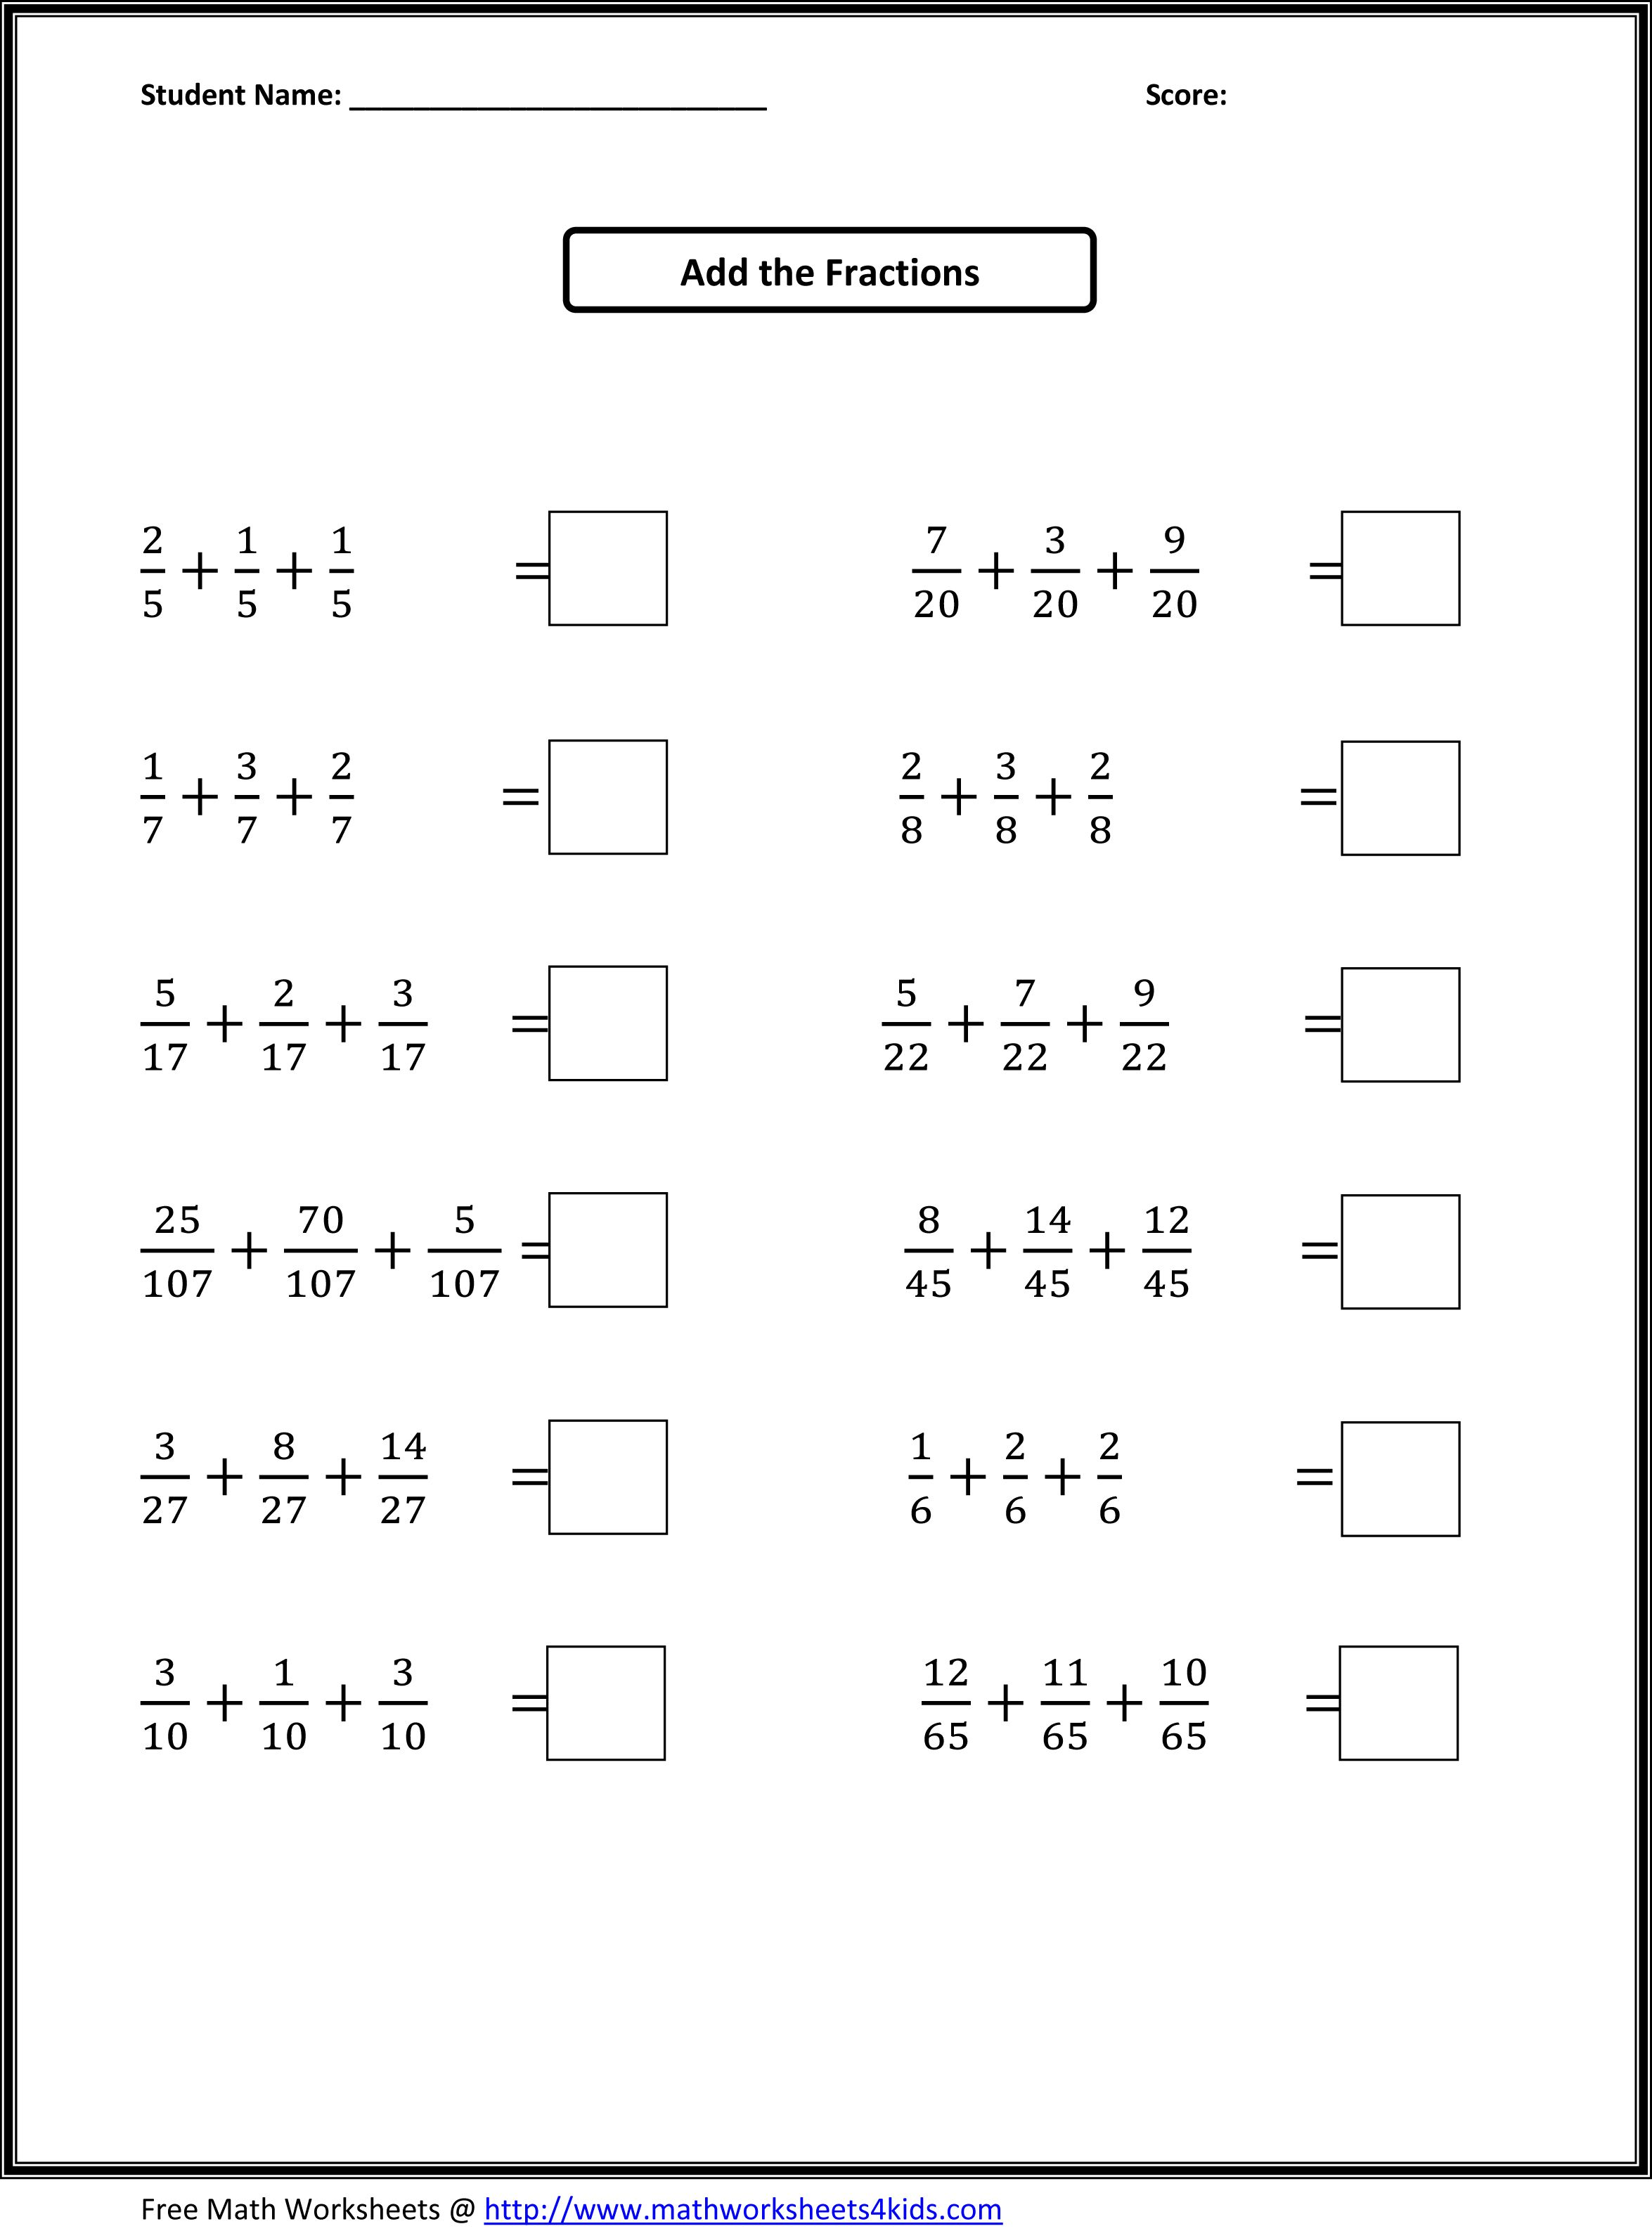 Printable worksheets by grade level and by skill. | Teaching Ideas ...